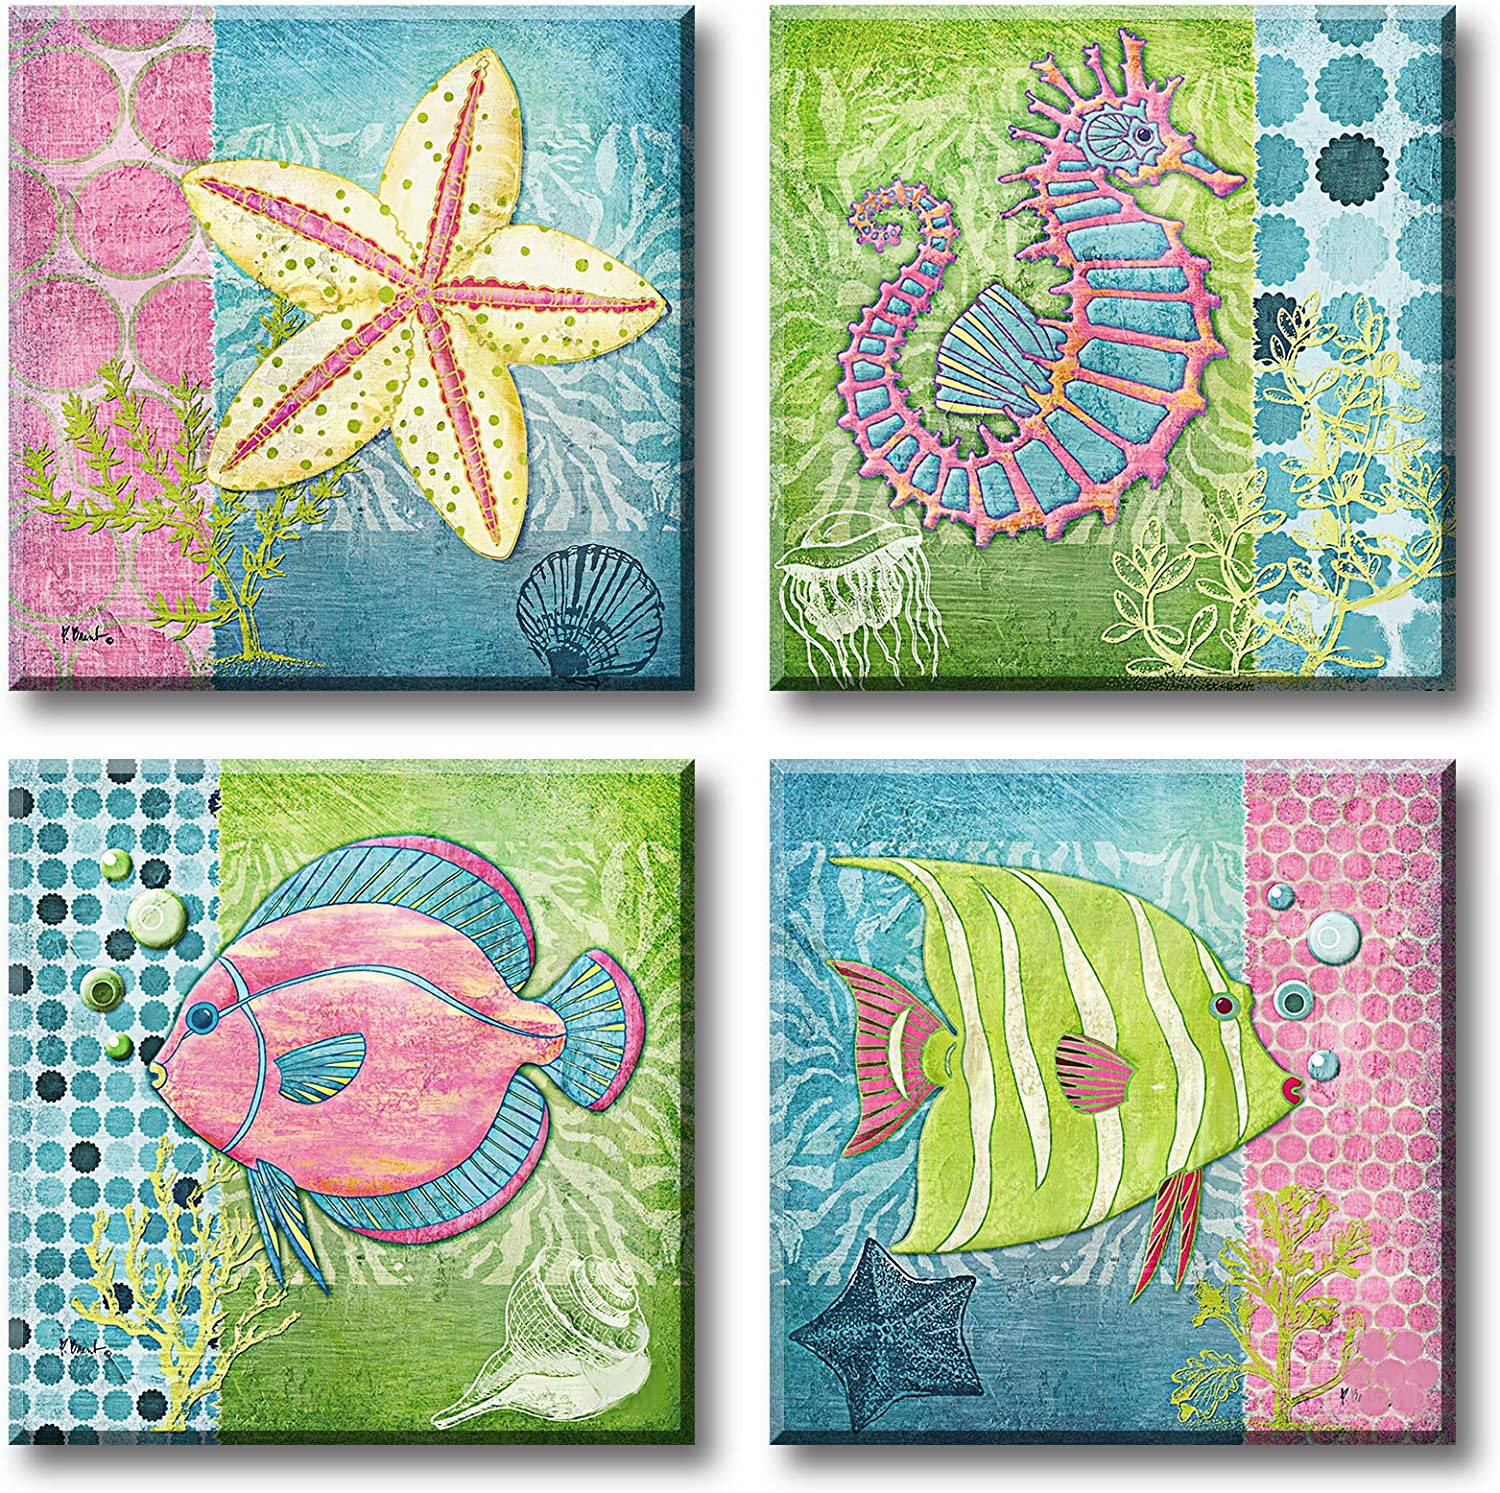 JiazuGo Bathroom Decor Wall Art Beach Pictures Teal Nautical Accessories Canvas Prints Coastal Seahorse Starfish Pretty Fish Paintings for Bedroom Restroom Home Decoration Framed 12X12 4 Pcs/Sets